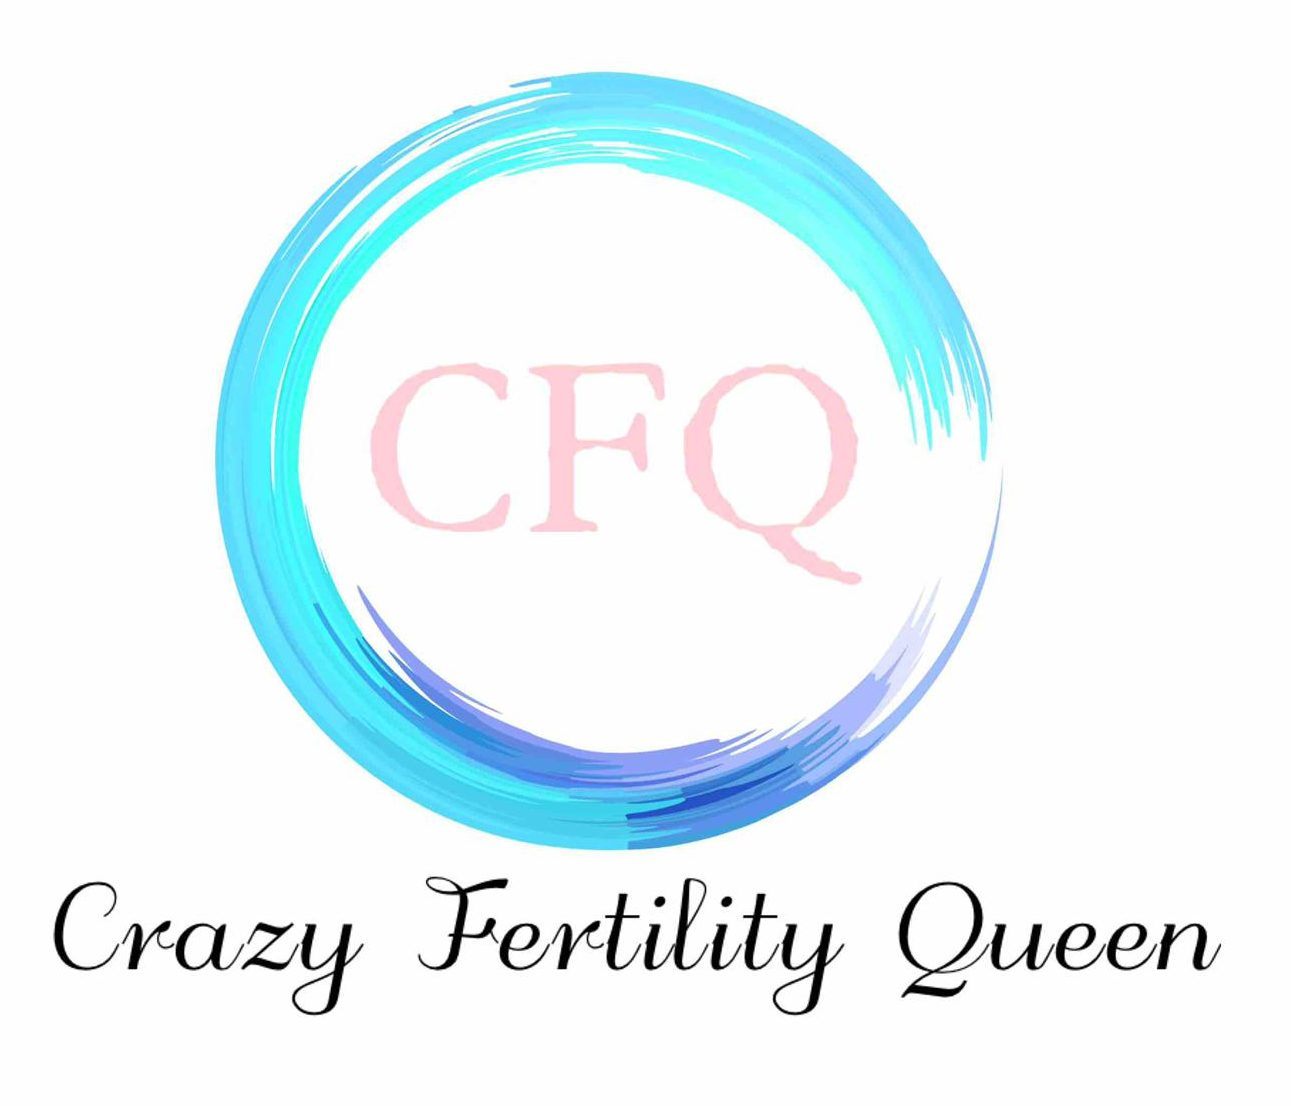 Crazy Fertility Queen